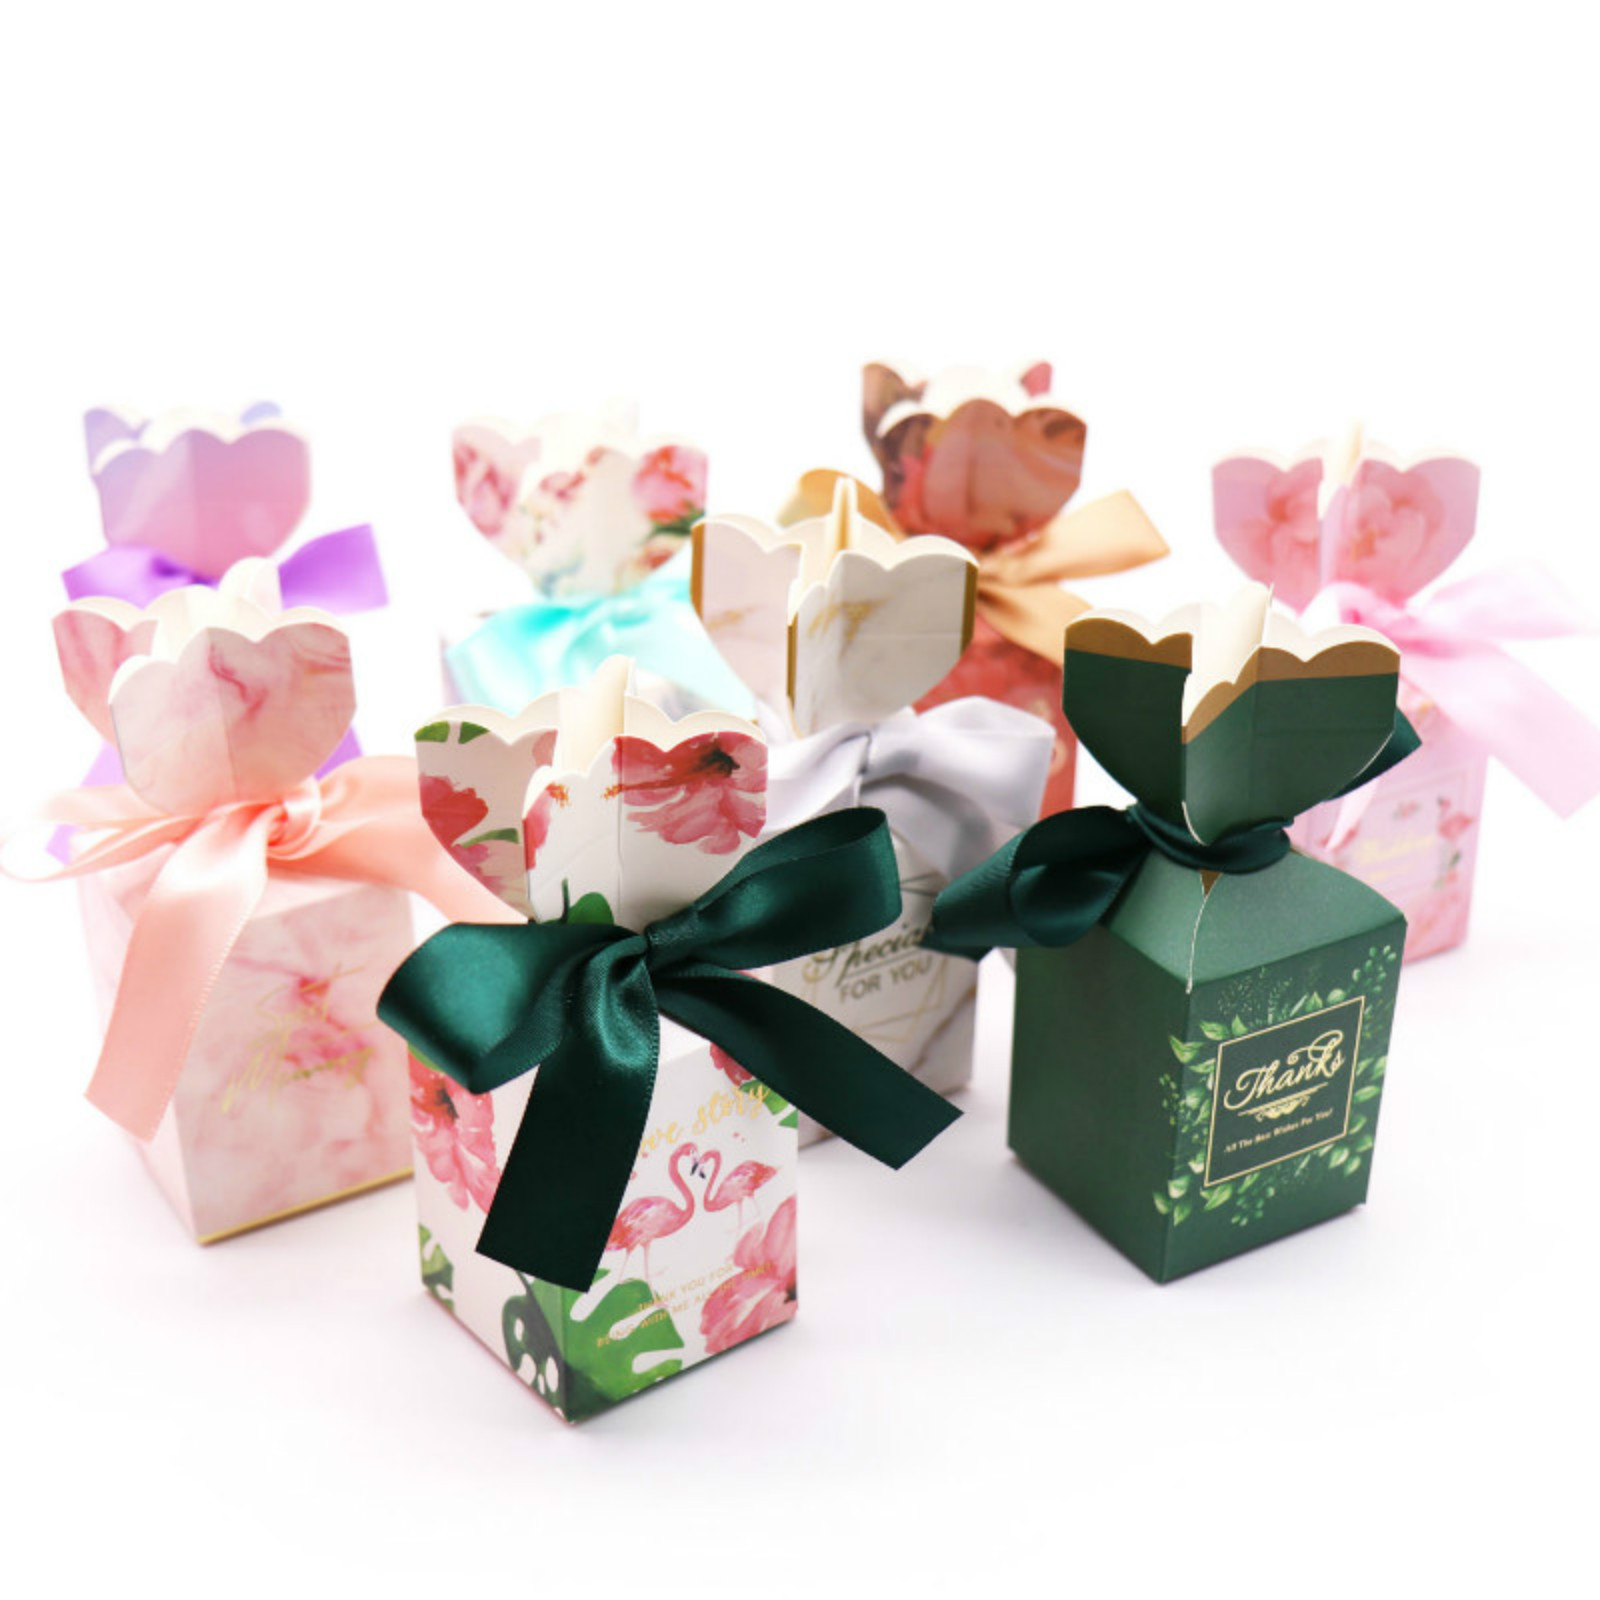 10pcs Romantic Wedding Decoration Flower Paper Candy Box Birthday Party Decoration Pink Marble,green Leaf,flamingo Candy Boxes